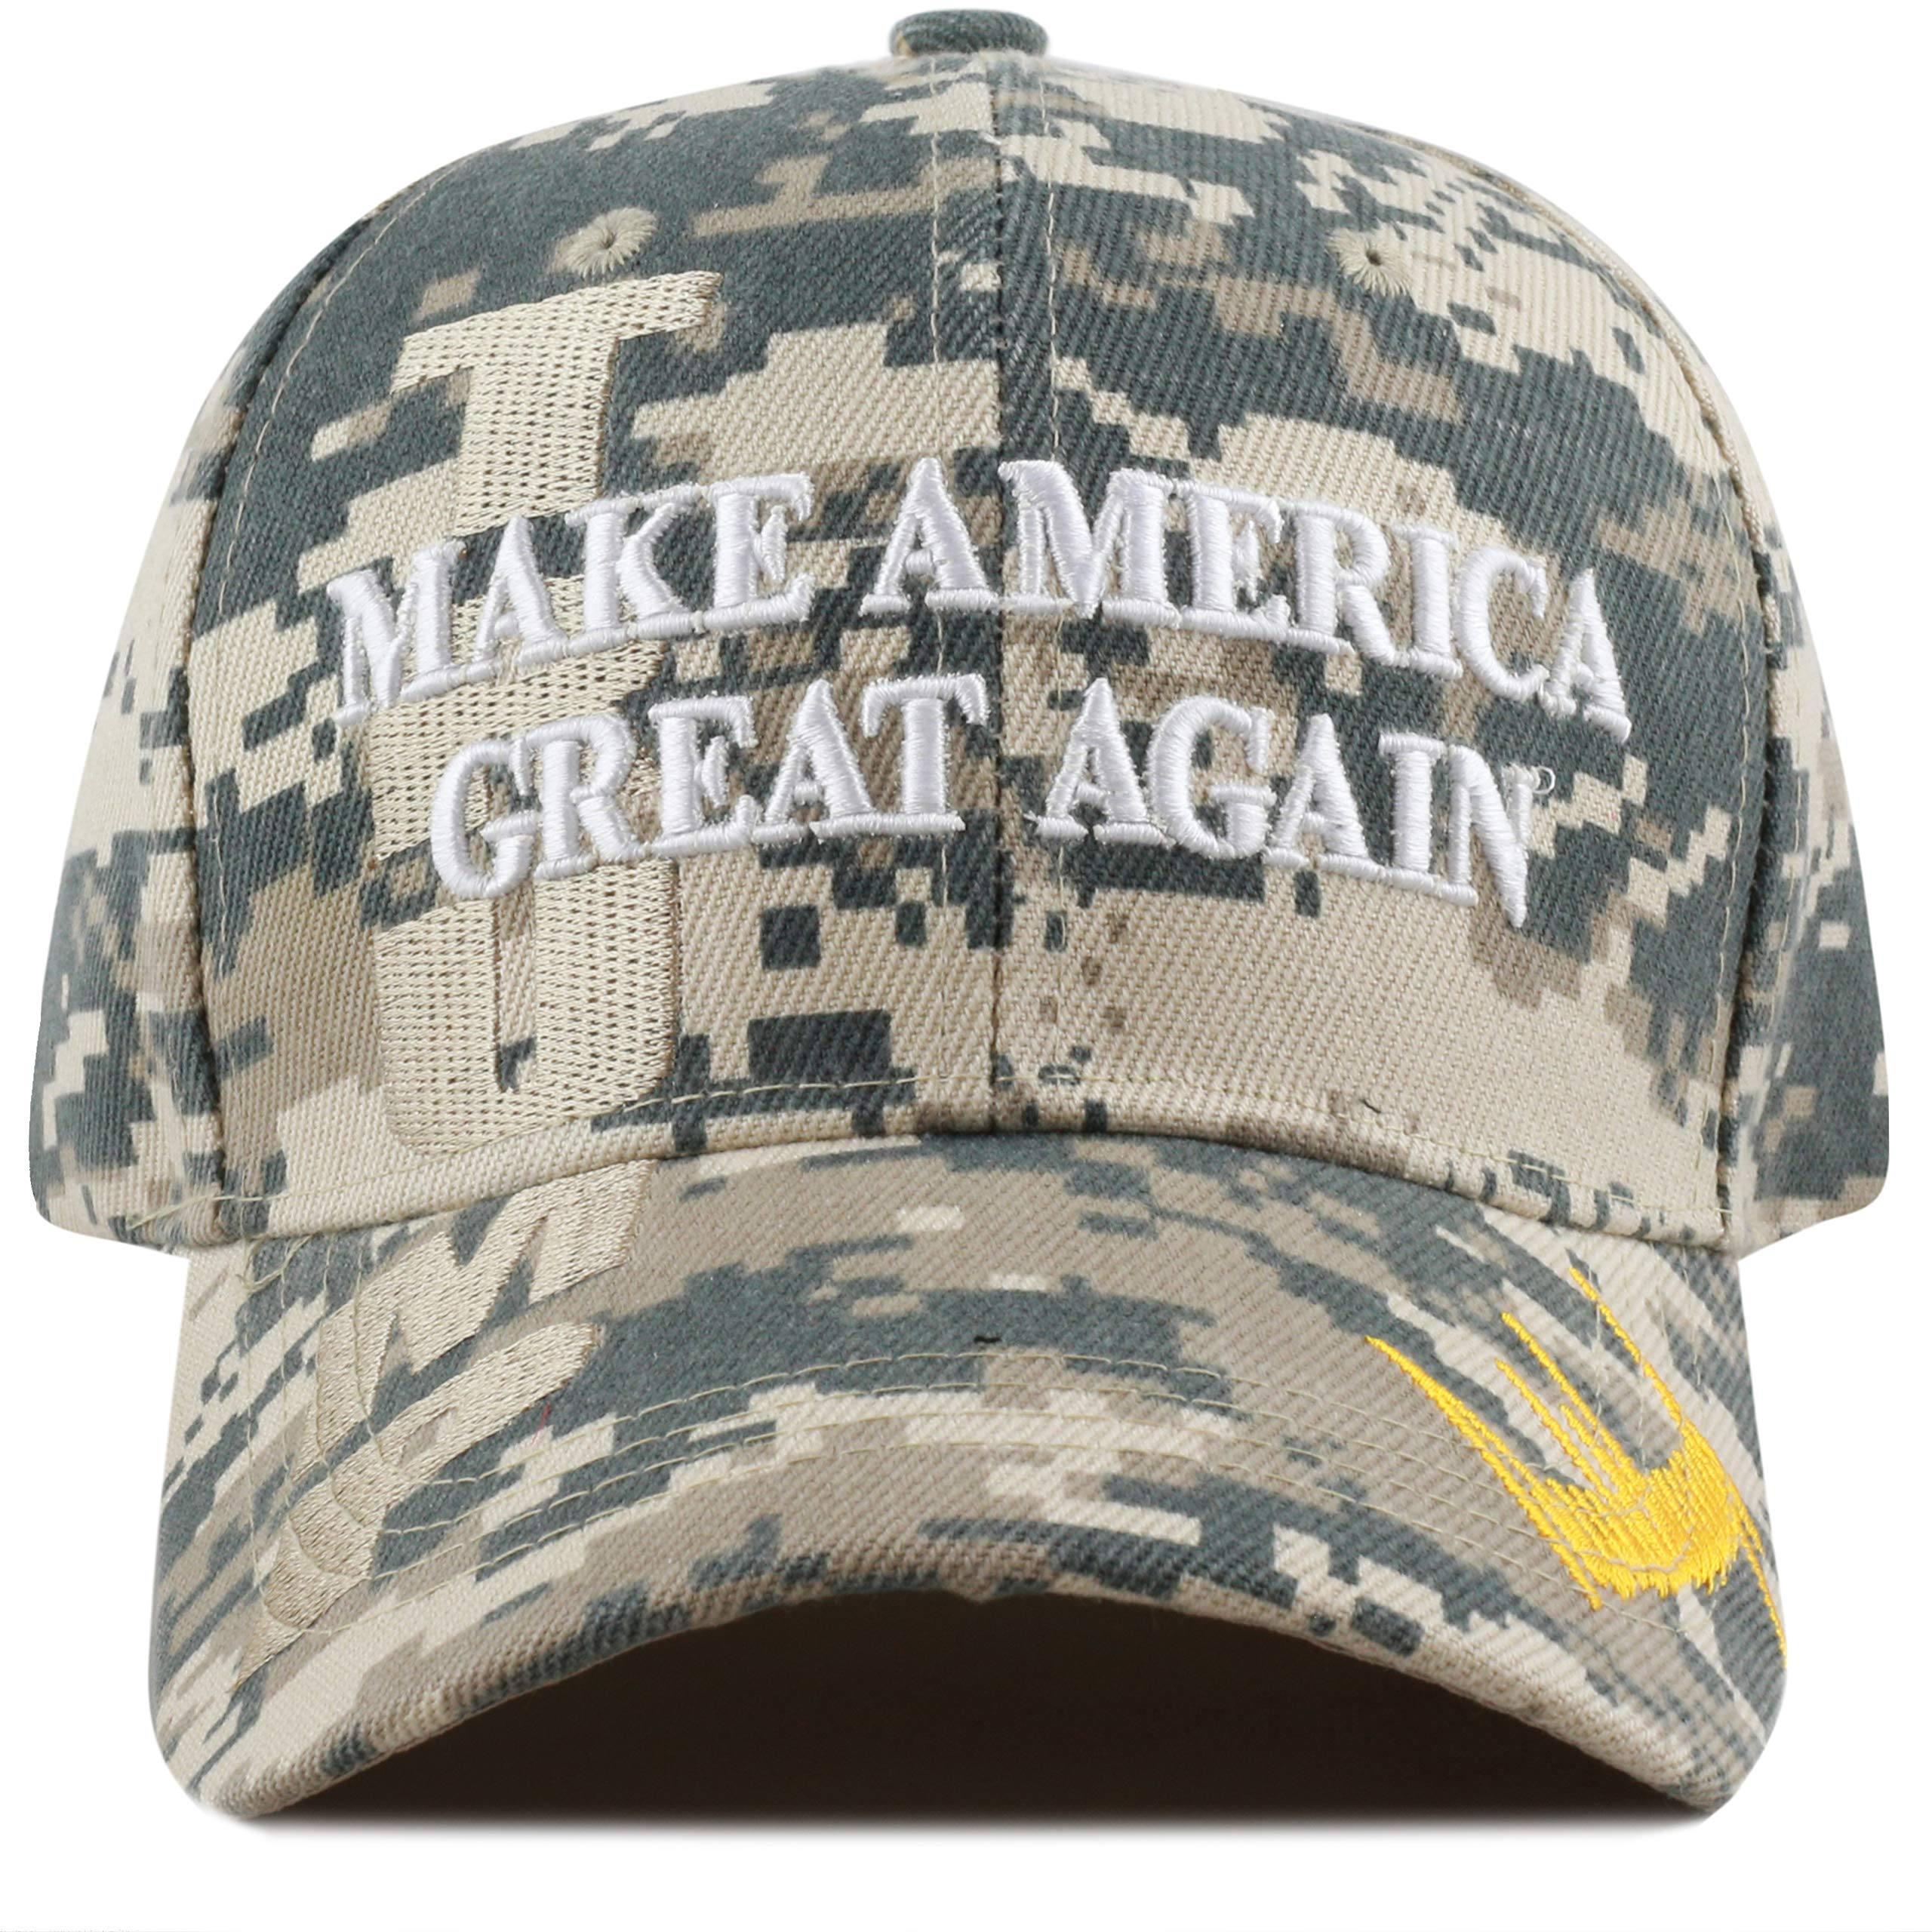 93acbb84c37 THE HAT DEPOT Exclusive Donald Trump Slogan Keep America Great Make America  Great Again 3D